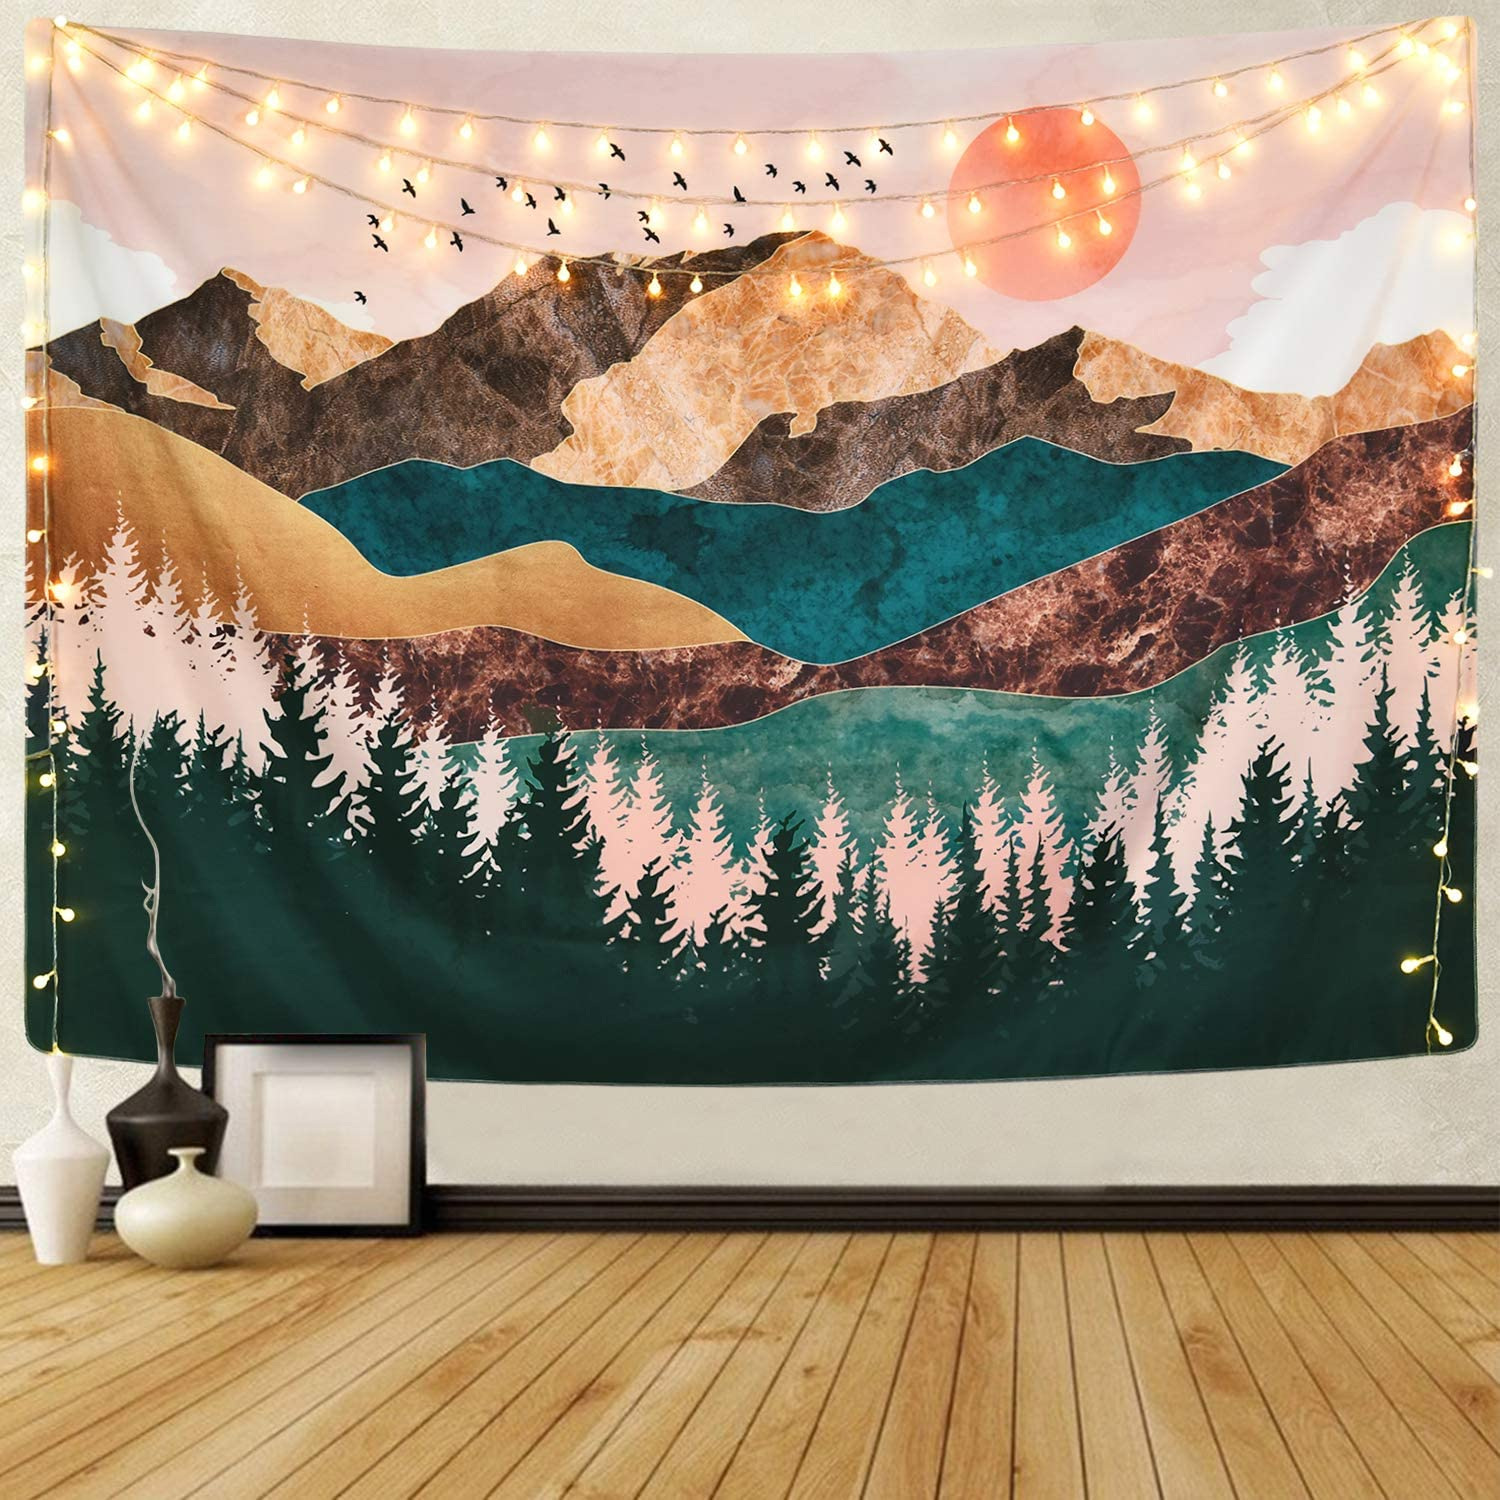 Sevenstars Mountain Tapestry Forest Tree Tapestry Sunset Tapestry Nature Landscape Tapestry Wall Hanging for Room(59.1 x 82.7 inches)